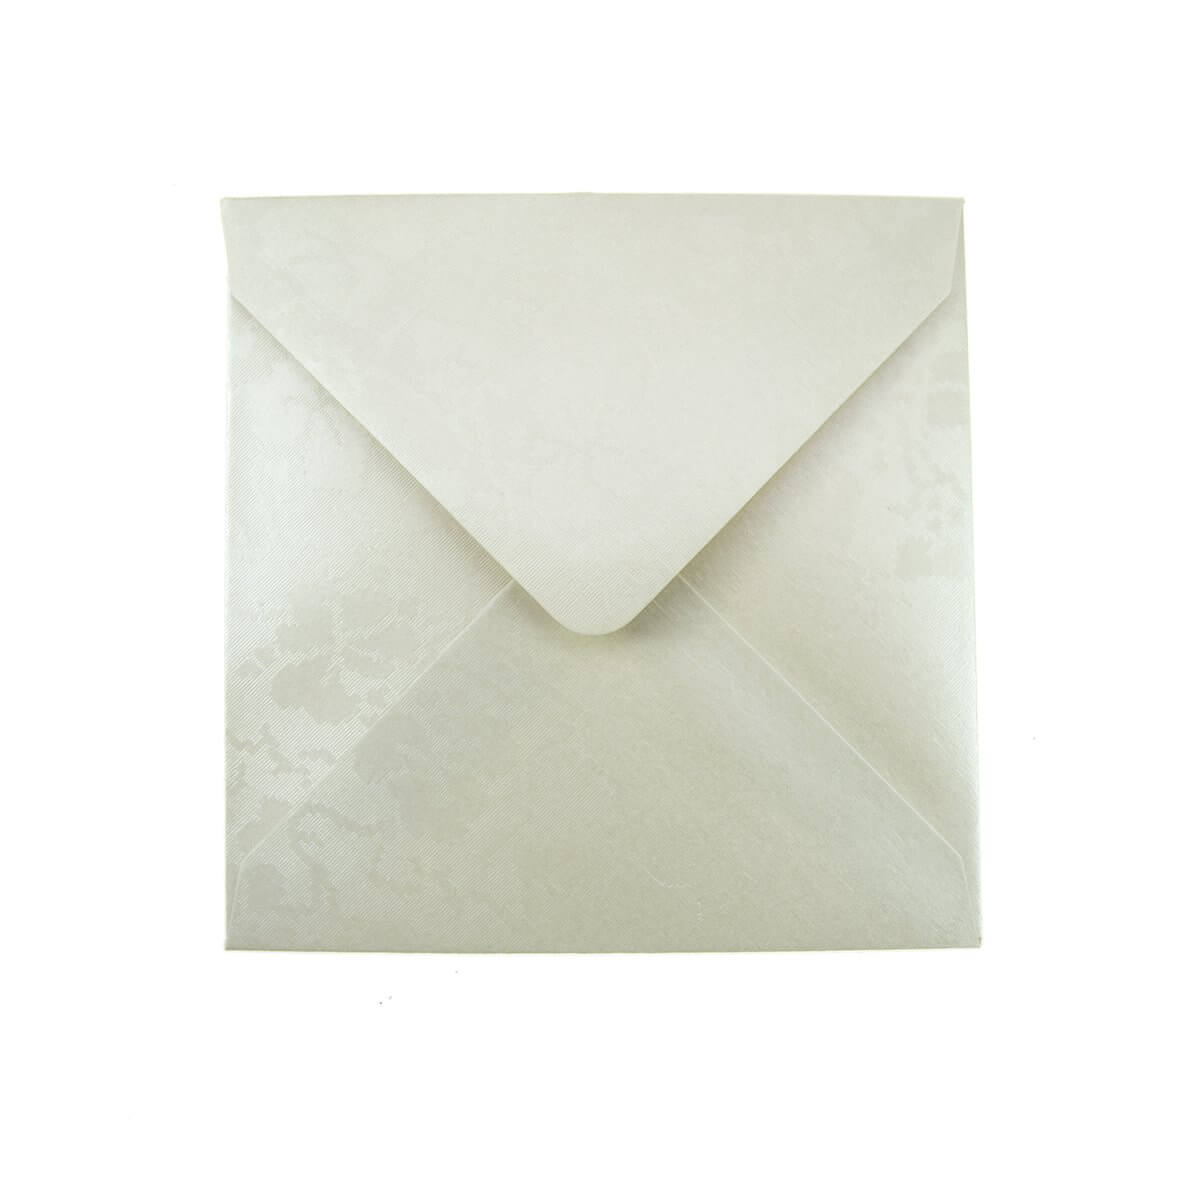 Broderie Ivory Small Square 130mm Envelope